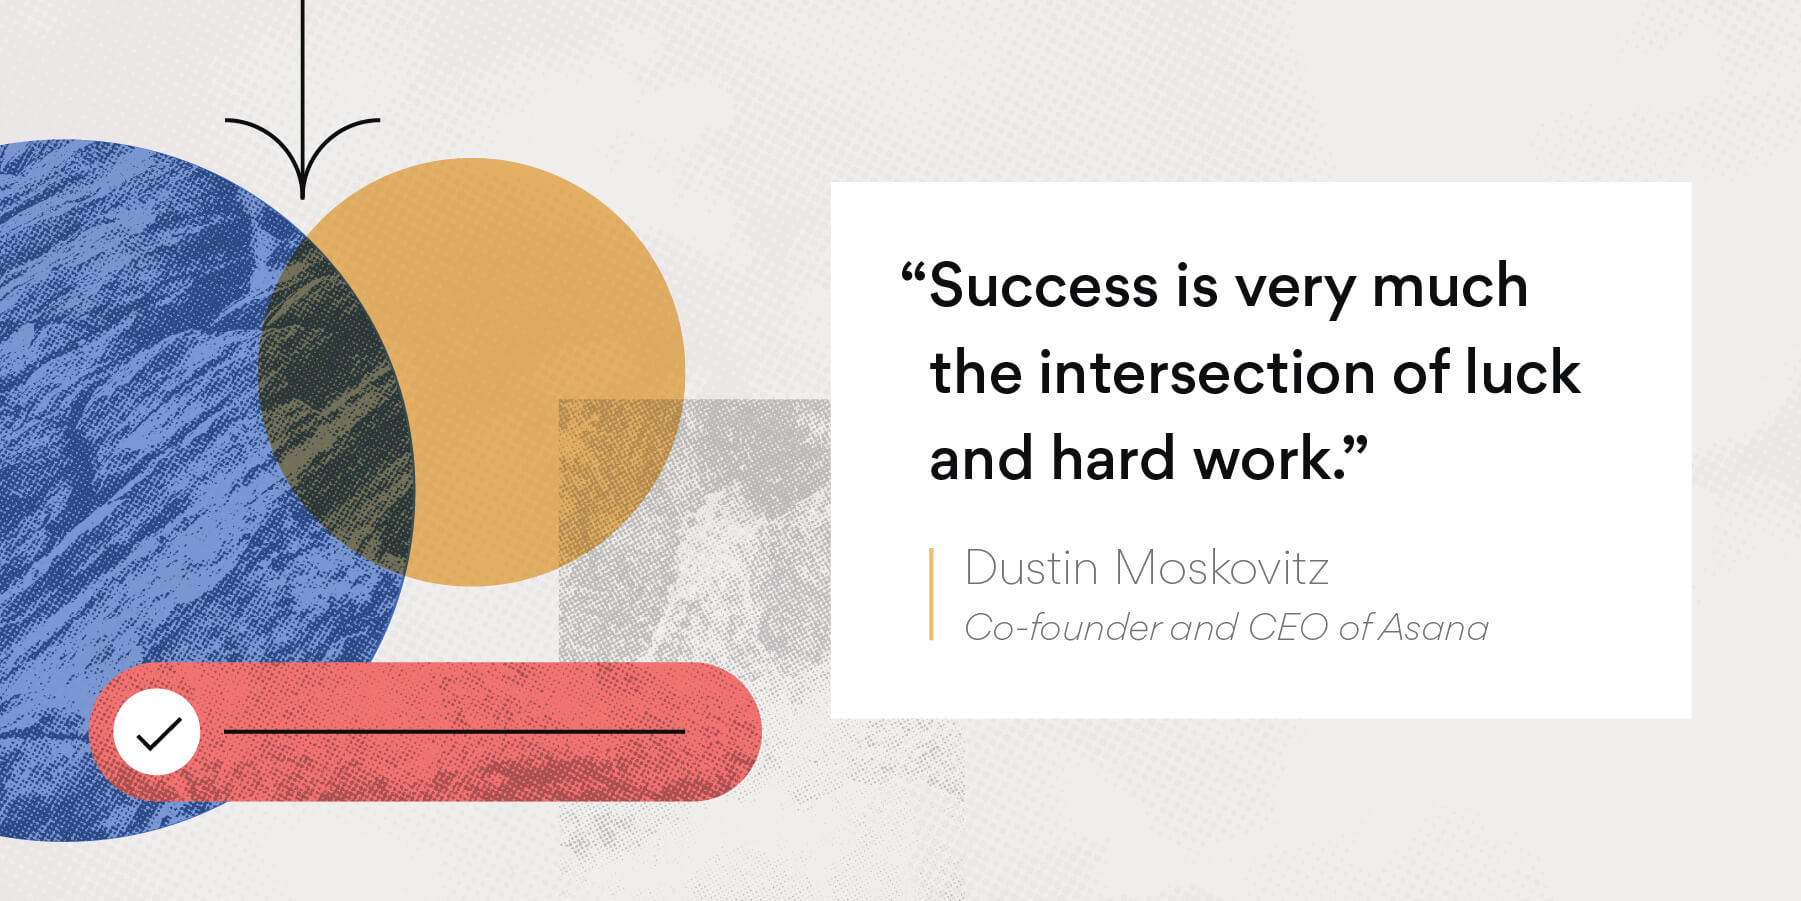 Team motivational quotes image quote from Dustin Moskovitz